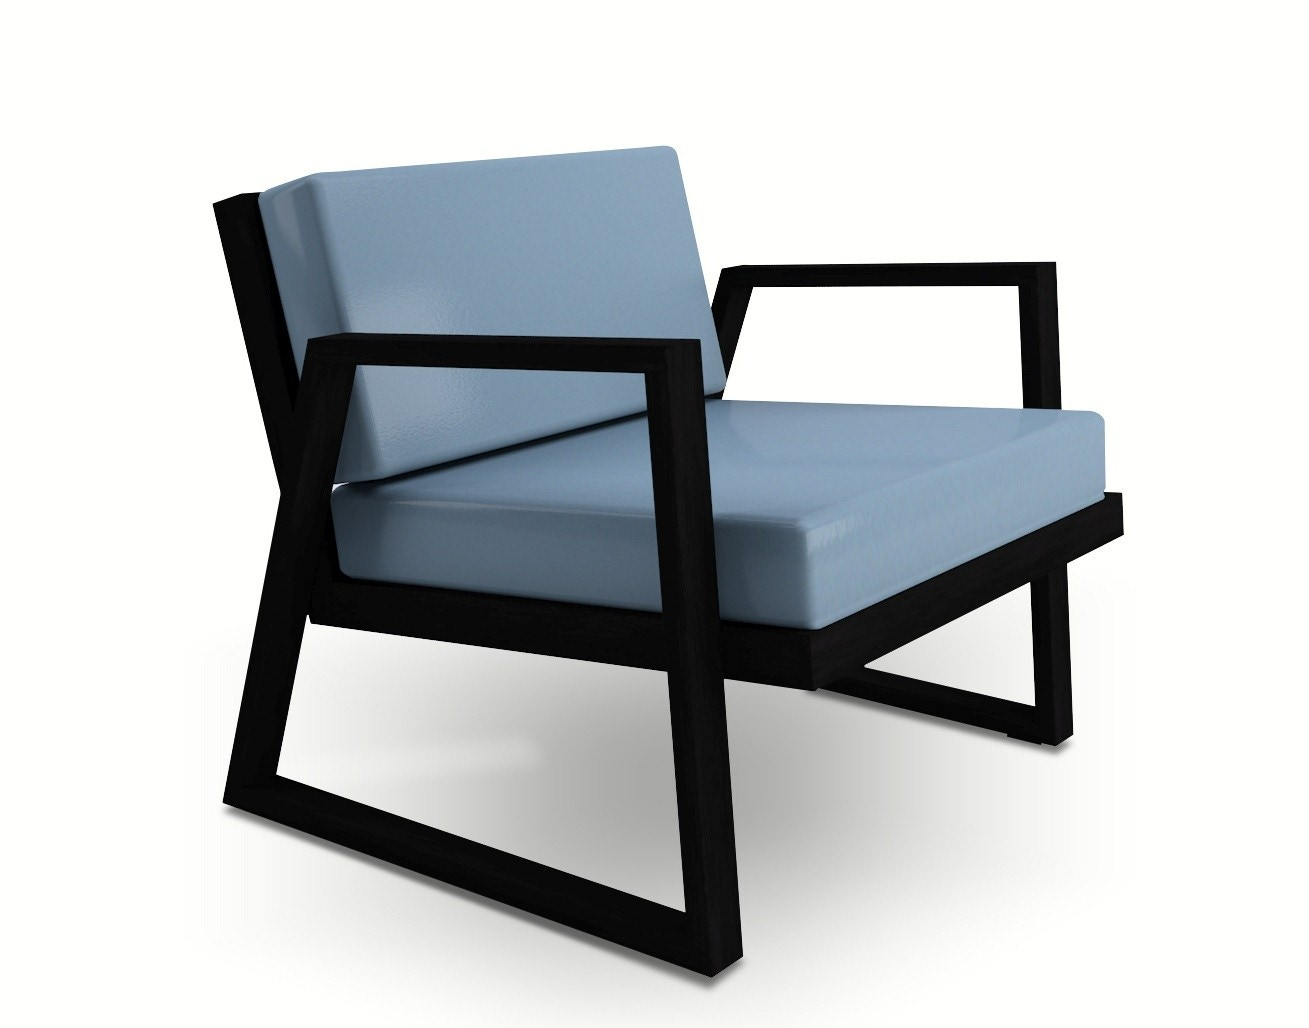 Dodeka Fugue Chair with Optional Heated Seat